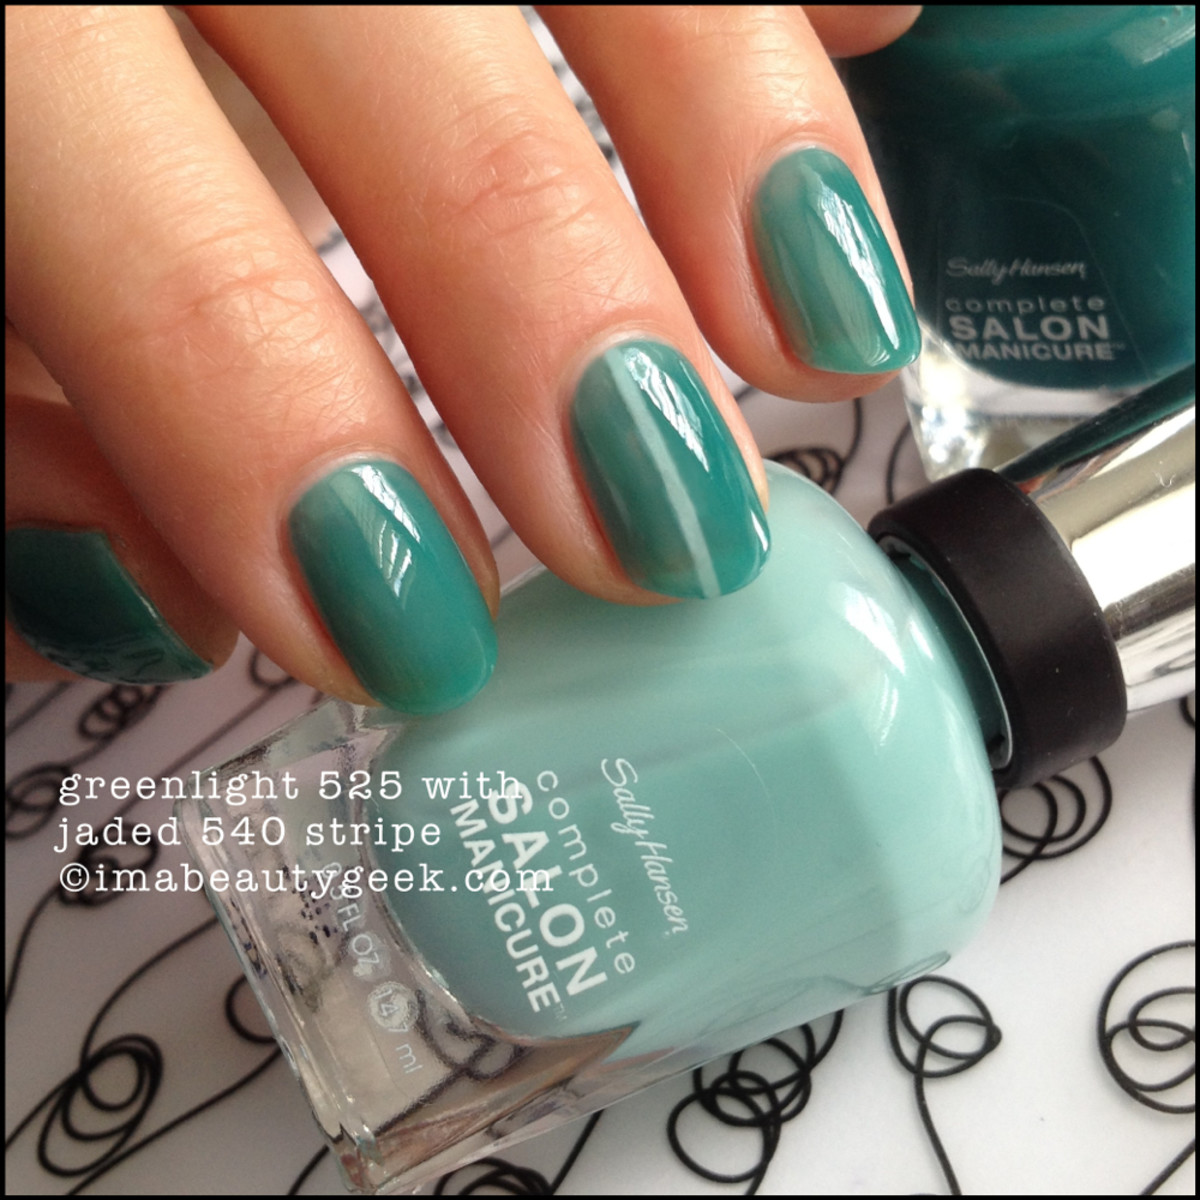 Tone-on-tone single-stripe mani in Sally Hansen Complete Salon Manicure in Jaded and Greenlight